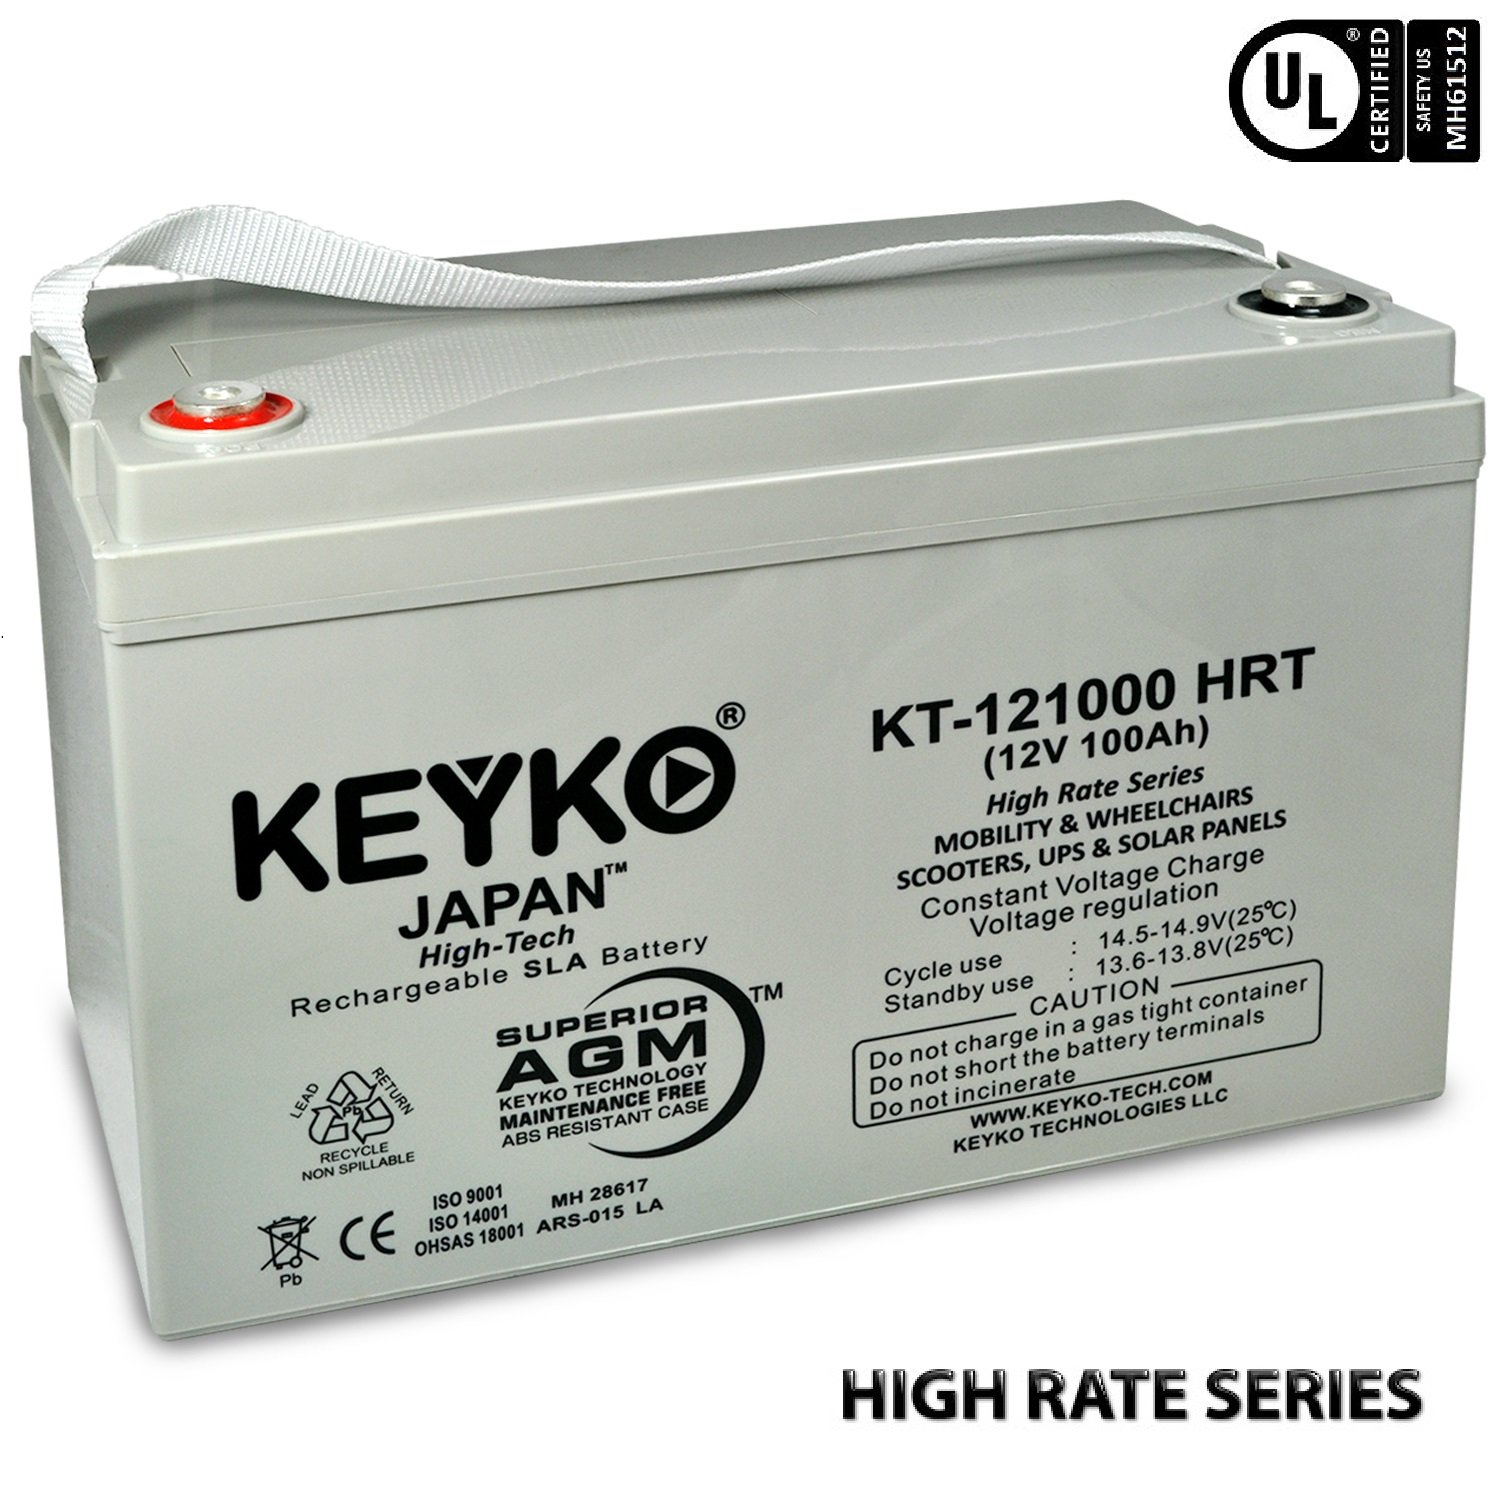 Goal Zero Yeti 1250 Solar Generator 12V 100Ah Real 100 Amp AGM / SLA Deep Cycle Battery for Solar Winds Inverters Generators Genuine KEYKO - IT Terminal - T3 by KEYKO